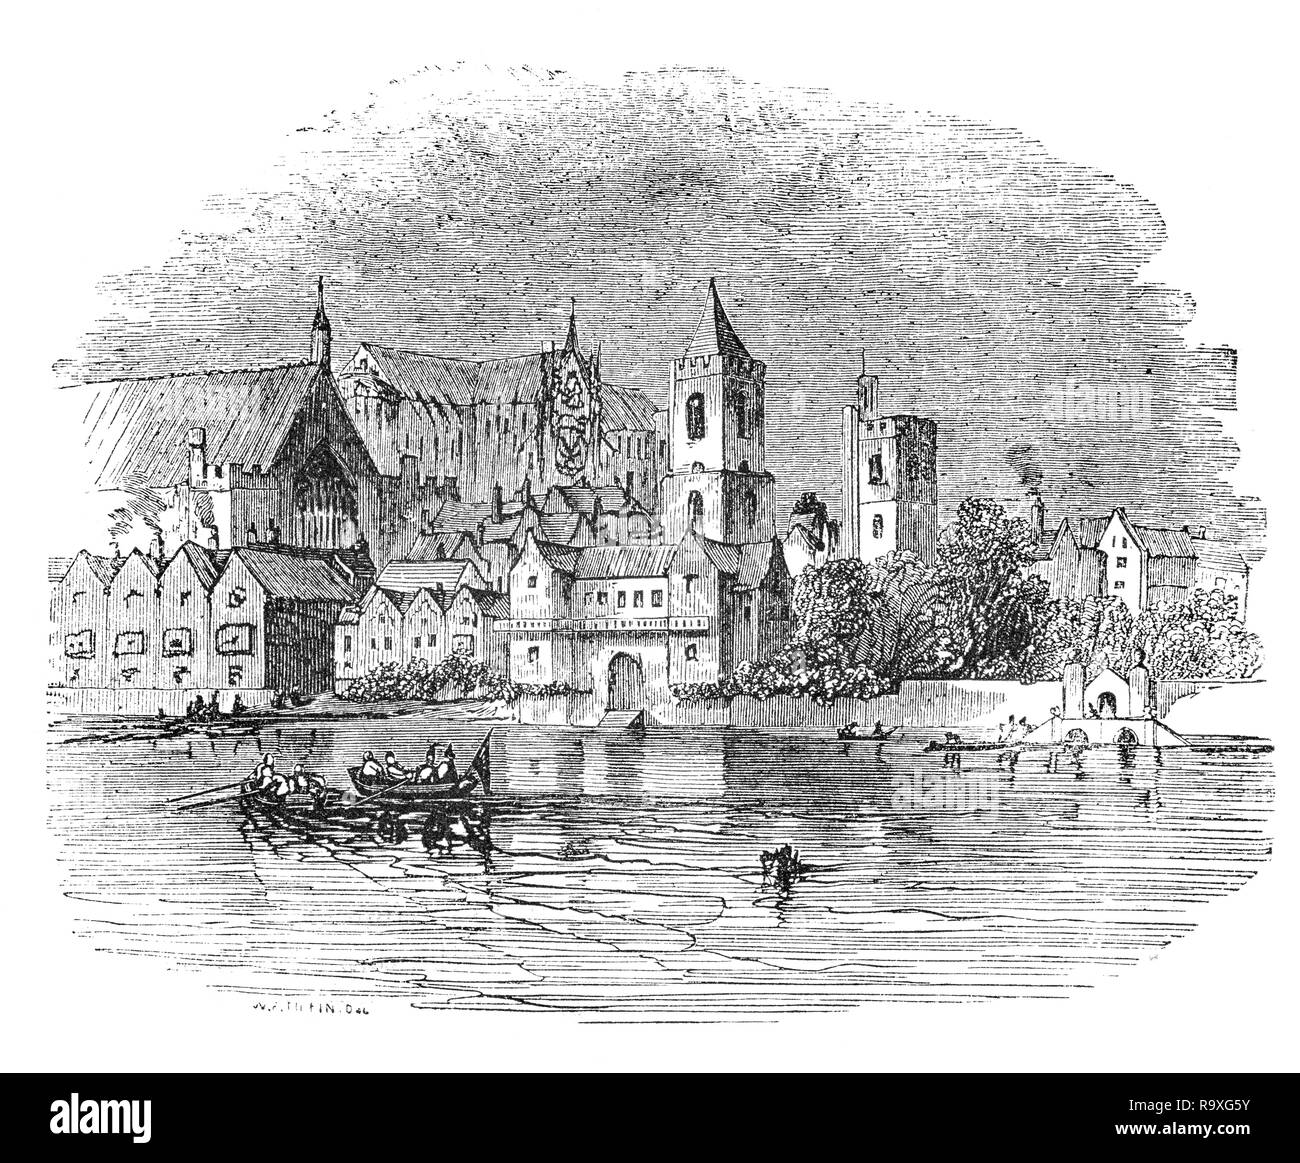 Sketched around 1660, from the River Thames, the settlement that grew up around Westminster Abbey, the royal palace, and Parliament that came to be known as Westminster was part of the County of Middlesex and separate from the City of London. - Stock Image